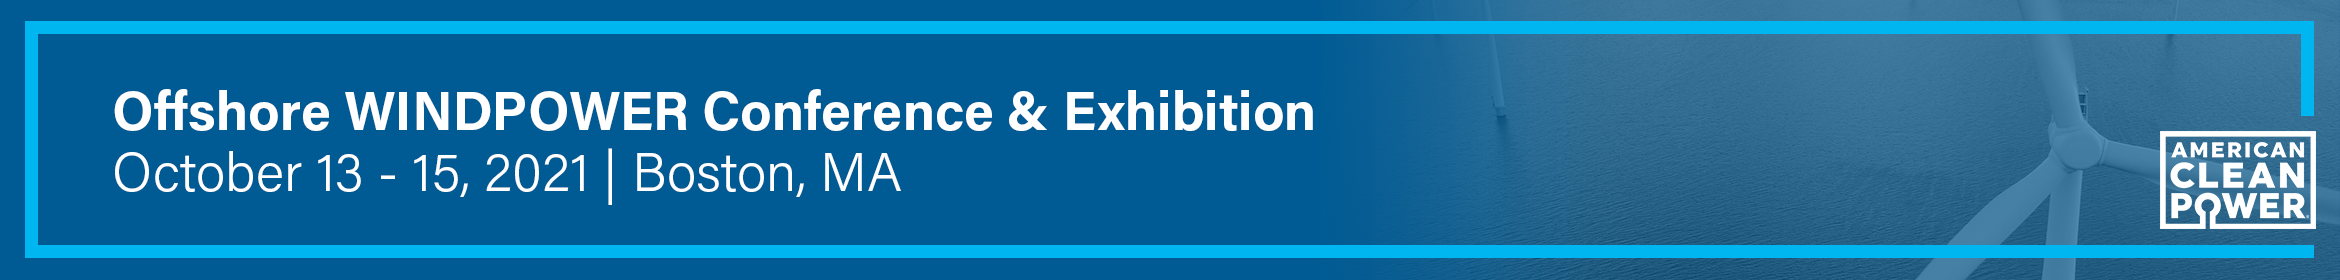 Offshore WINDPOWER Conference & Exhibition 2021 Main banner